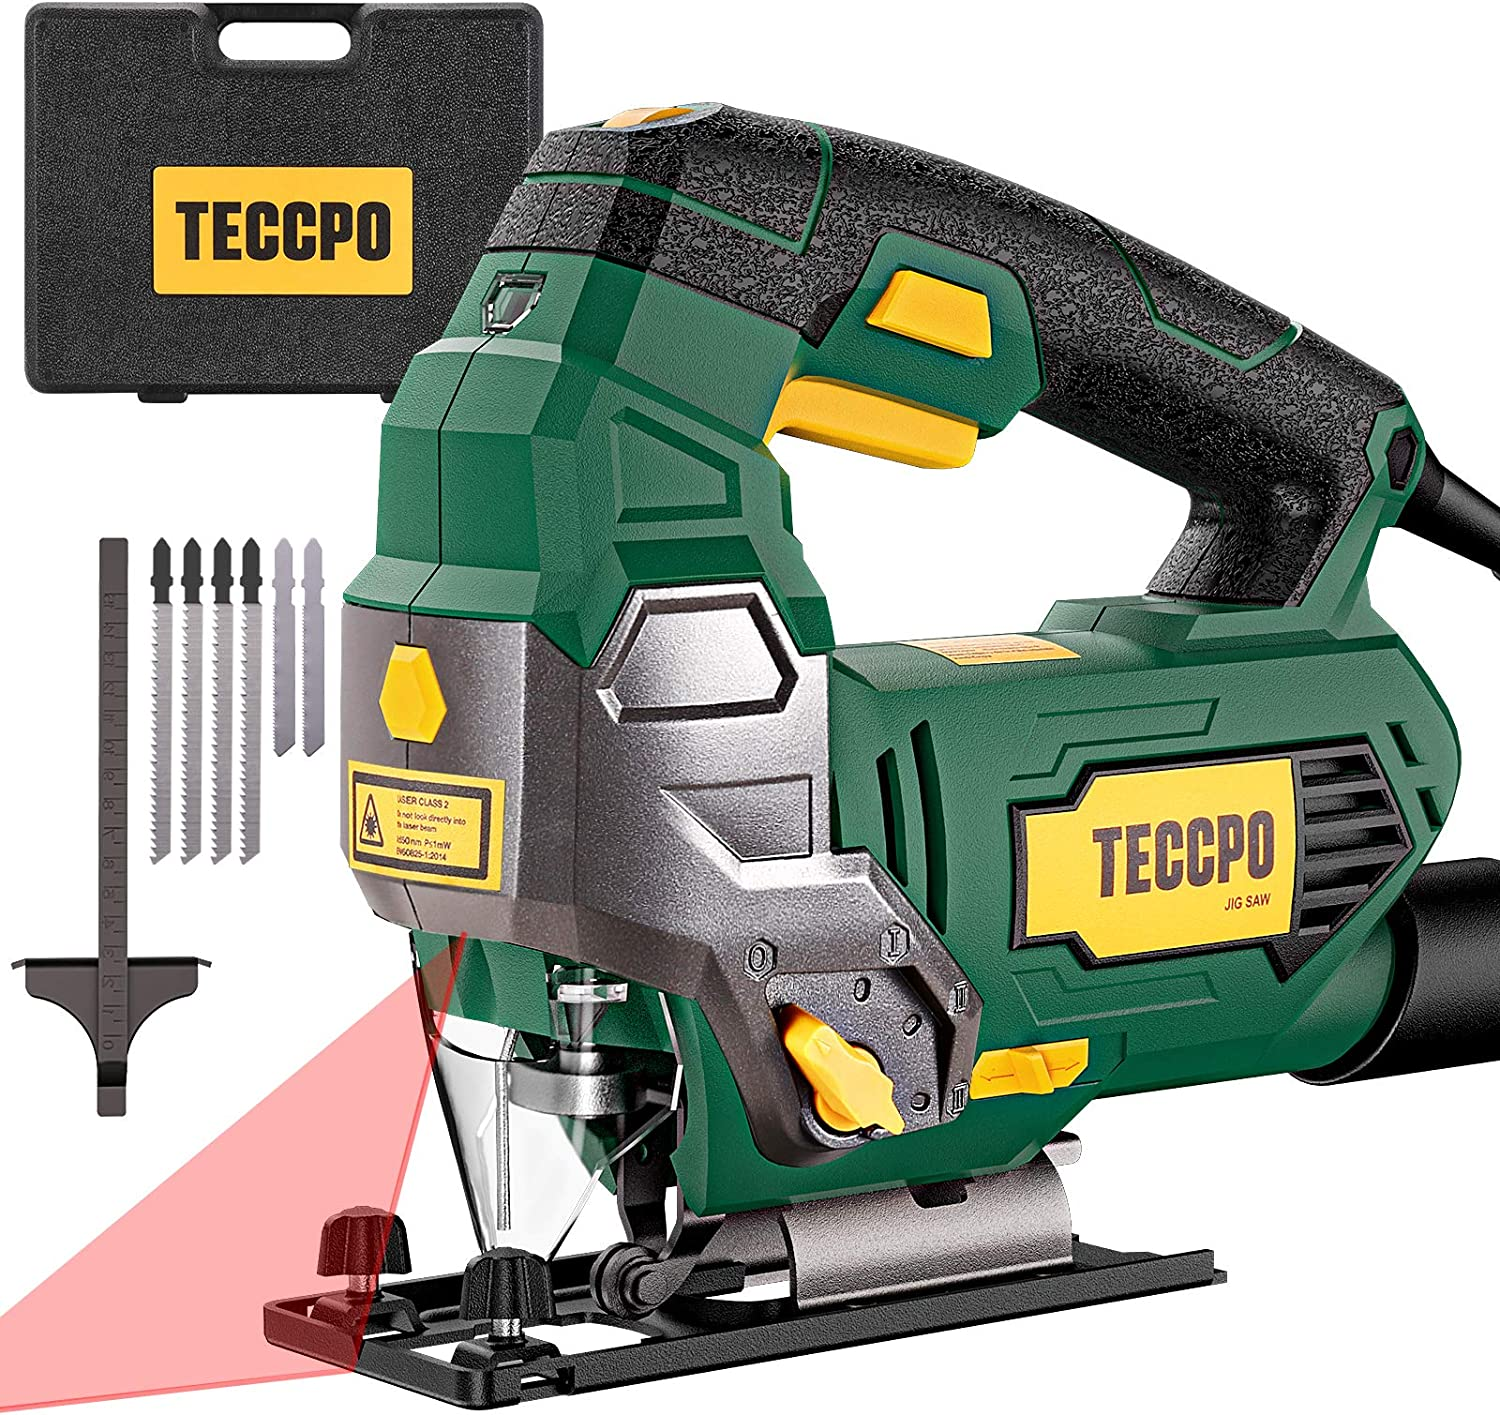 TECCPO 6.5Amp Jigsaw, 3000 SPM Jig saw with Laser, 6 Variable Speed